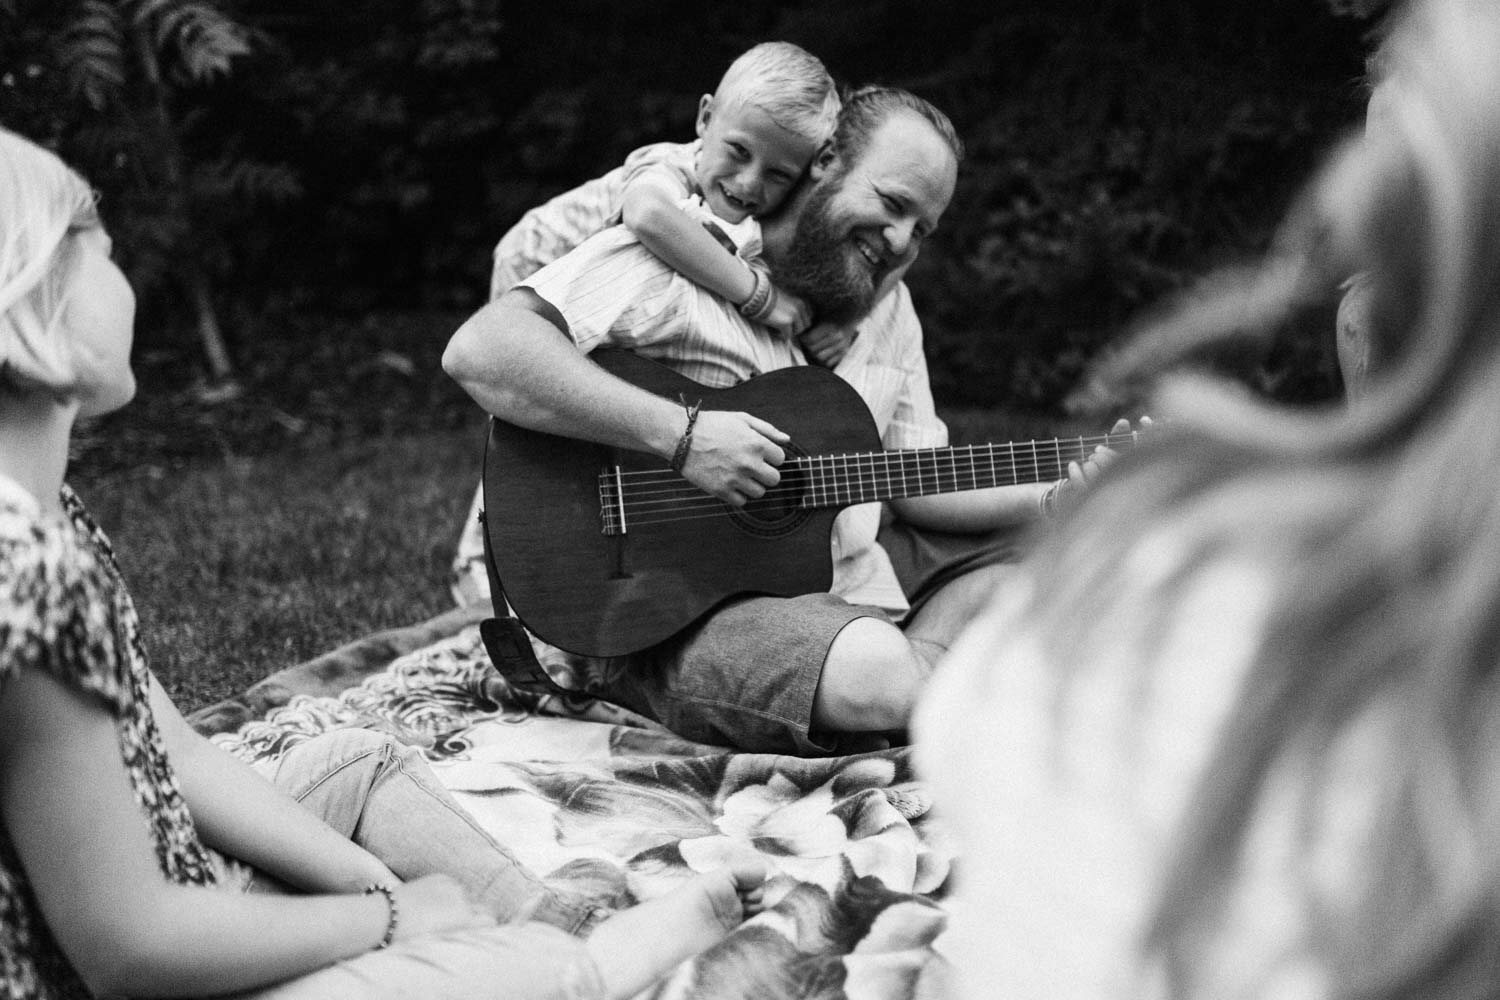 candid-black-and-white-photo-of-father-and-sun-hugging-and-playing-guitar-salt-lake-city-utah